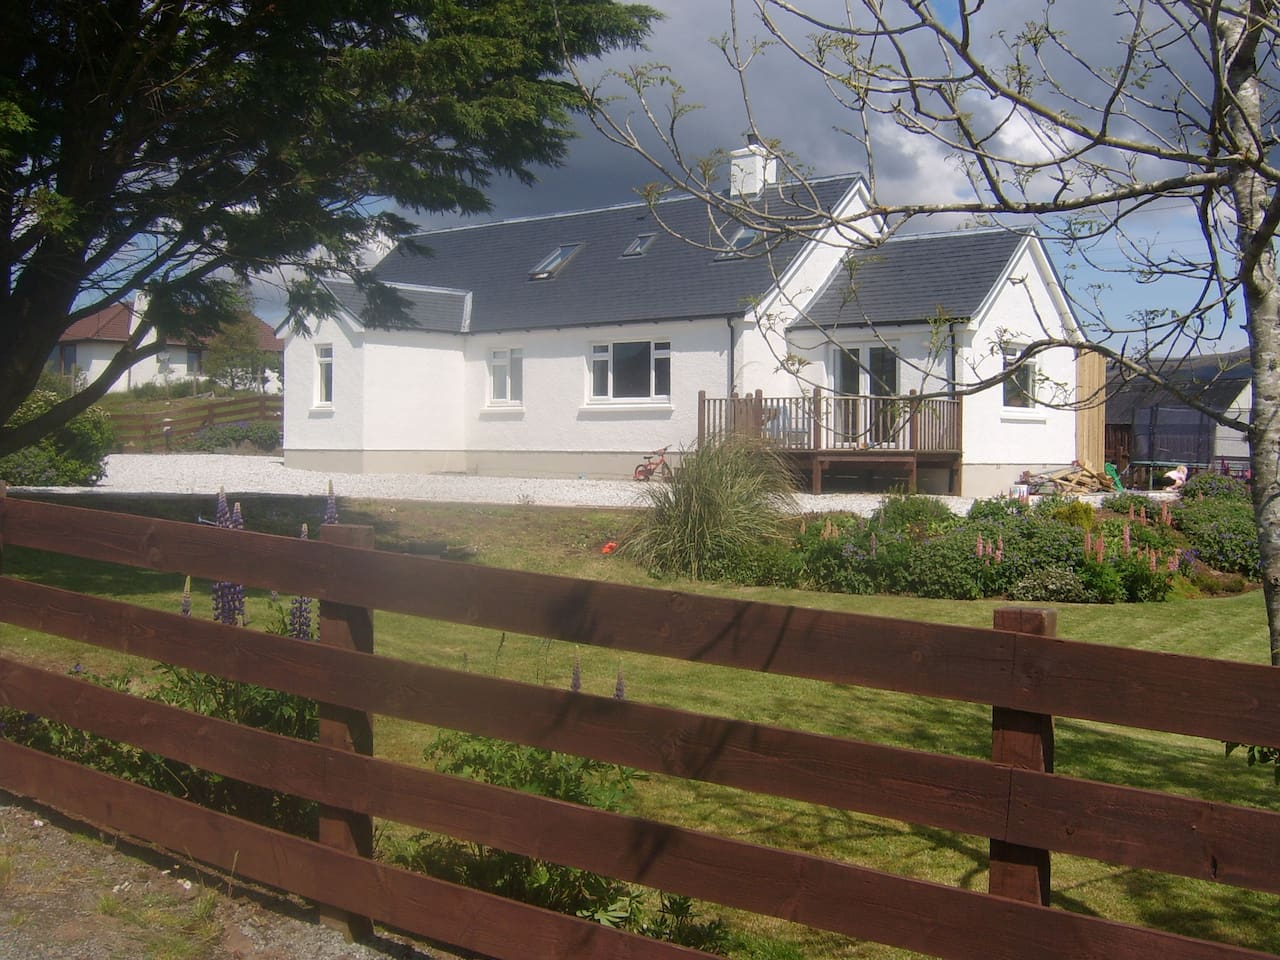 40 Bernisdale, Ally, Rachael and their children's family home.